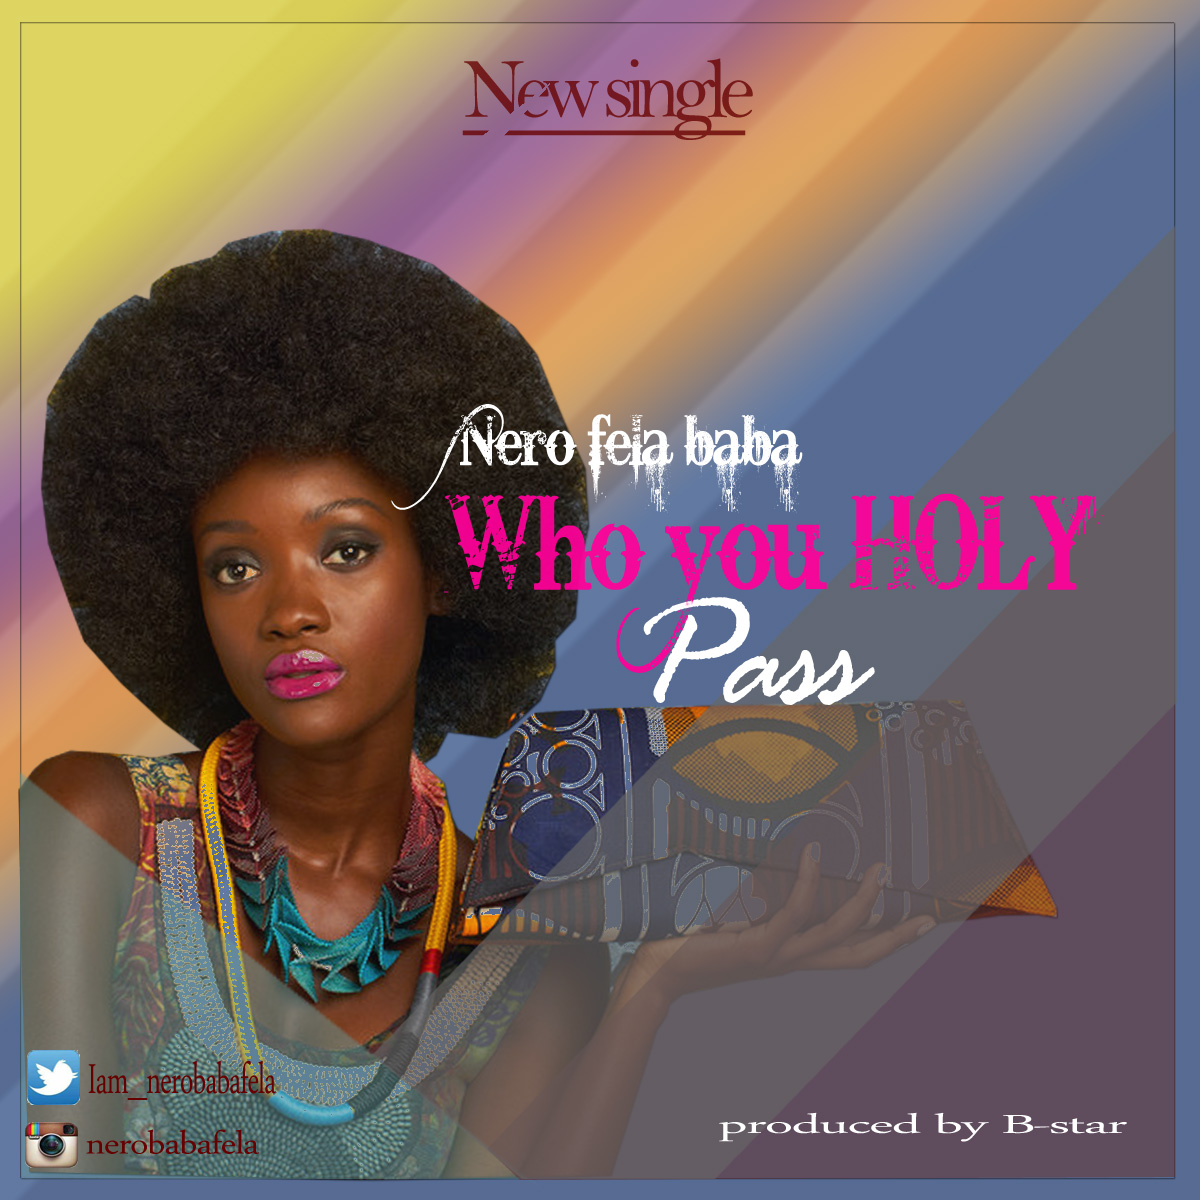 MUSIC PREMIERE] WHO HOLY PASS!! BY NERO BABA FELA - 9ja